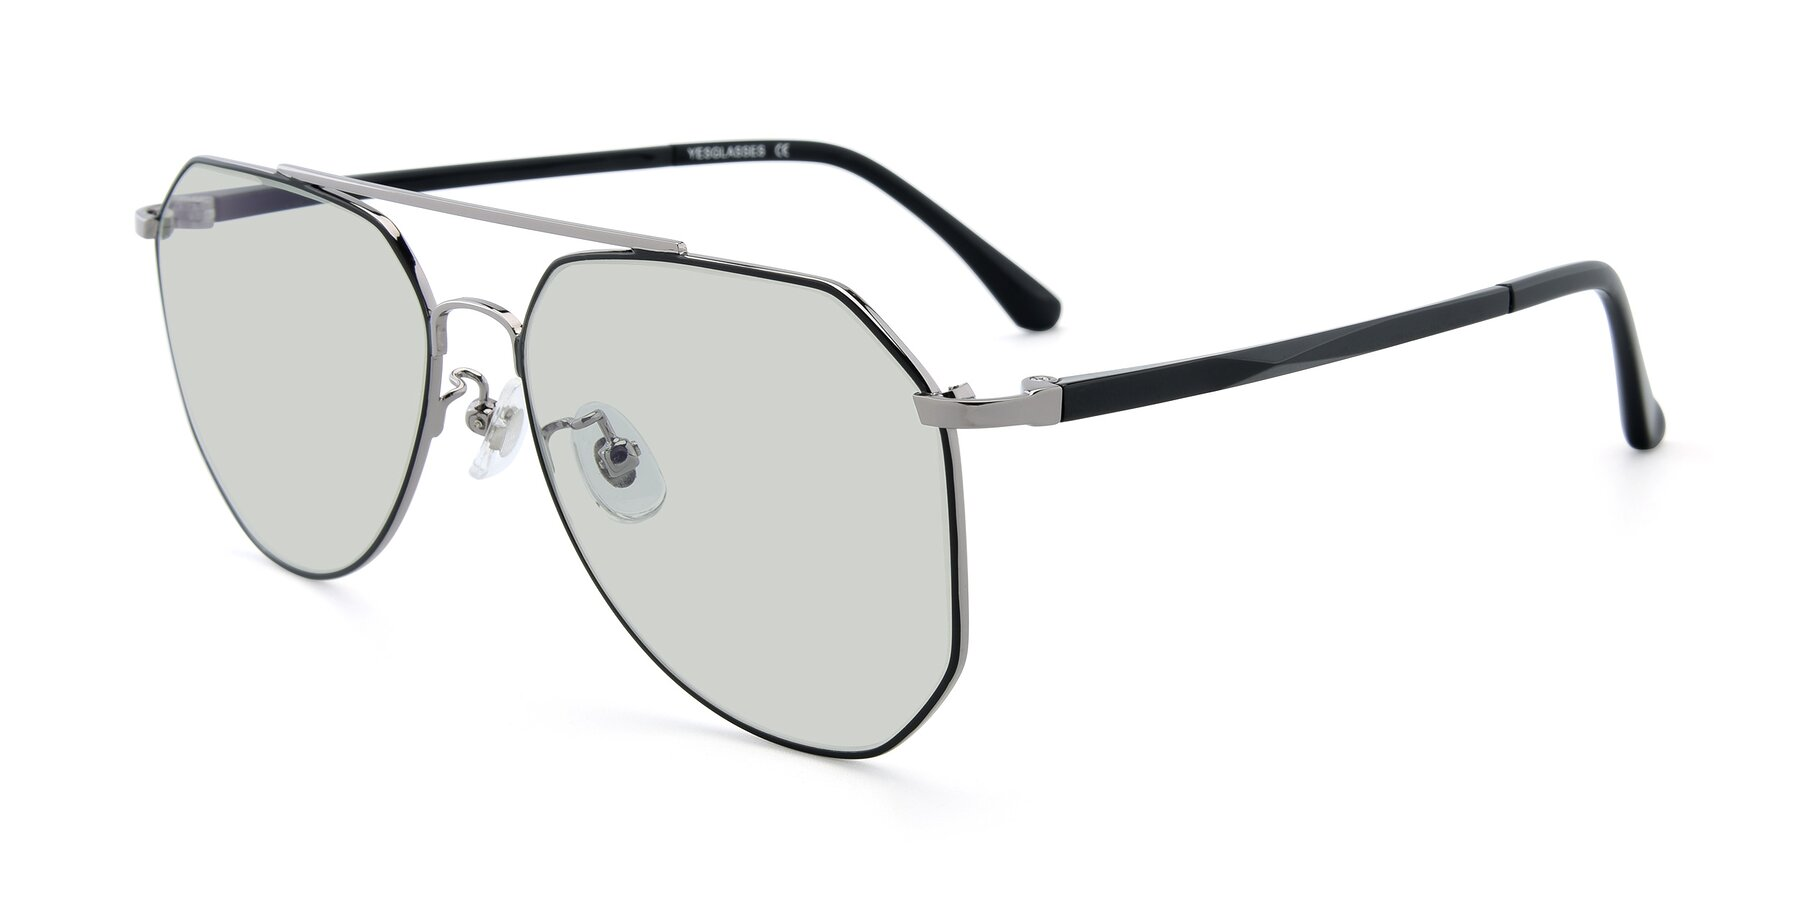 Angle of XC-8040 in Black/ Gun with Light Green Tinted Lenses